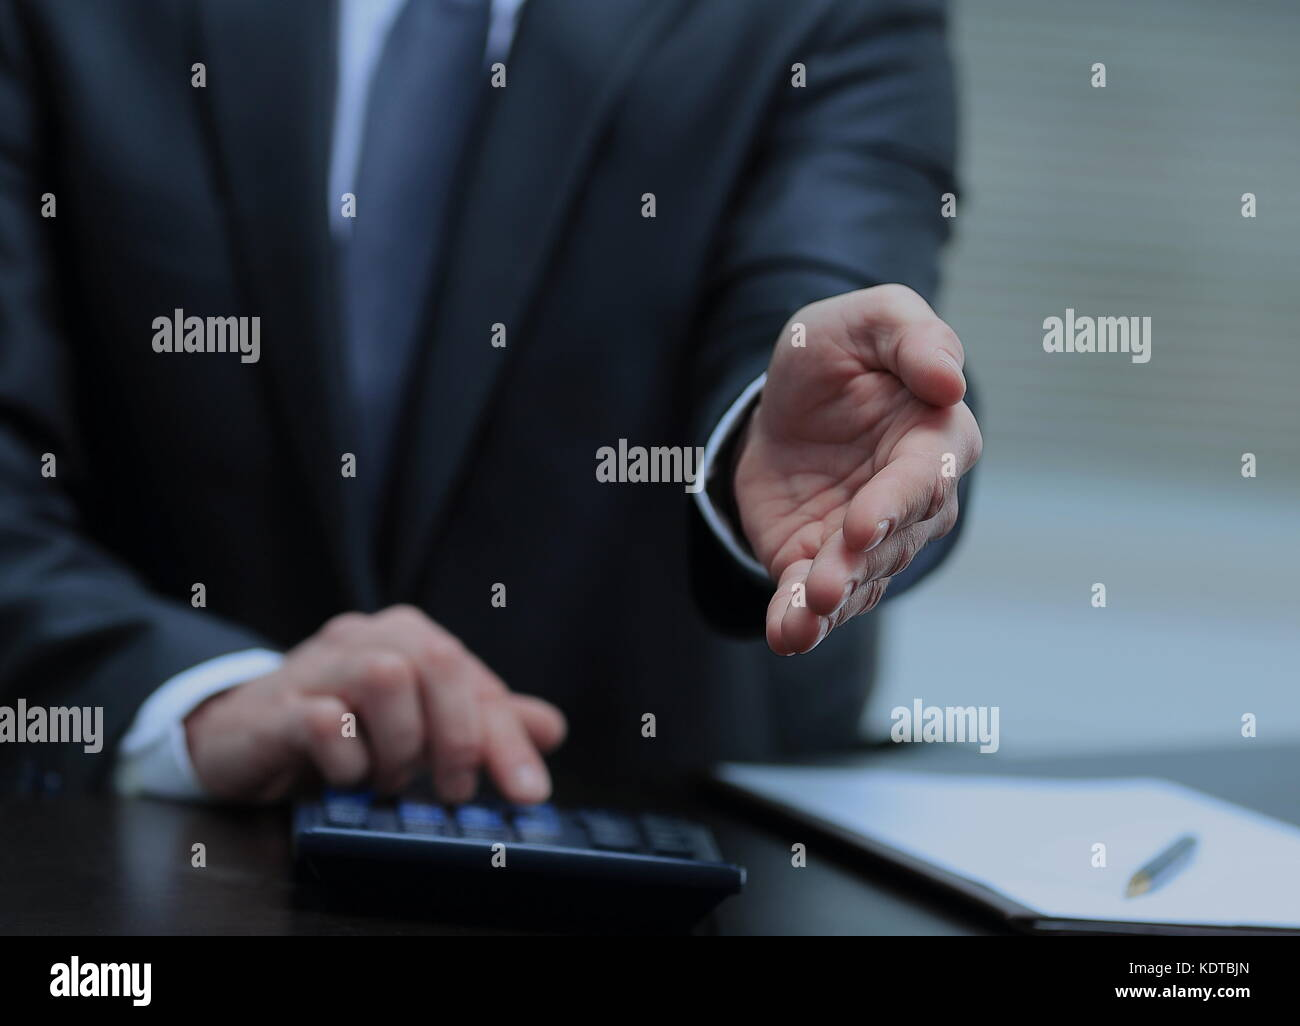 A business man with an open hand ready to seal a deal - Stock Image